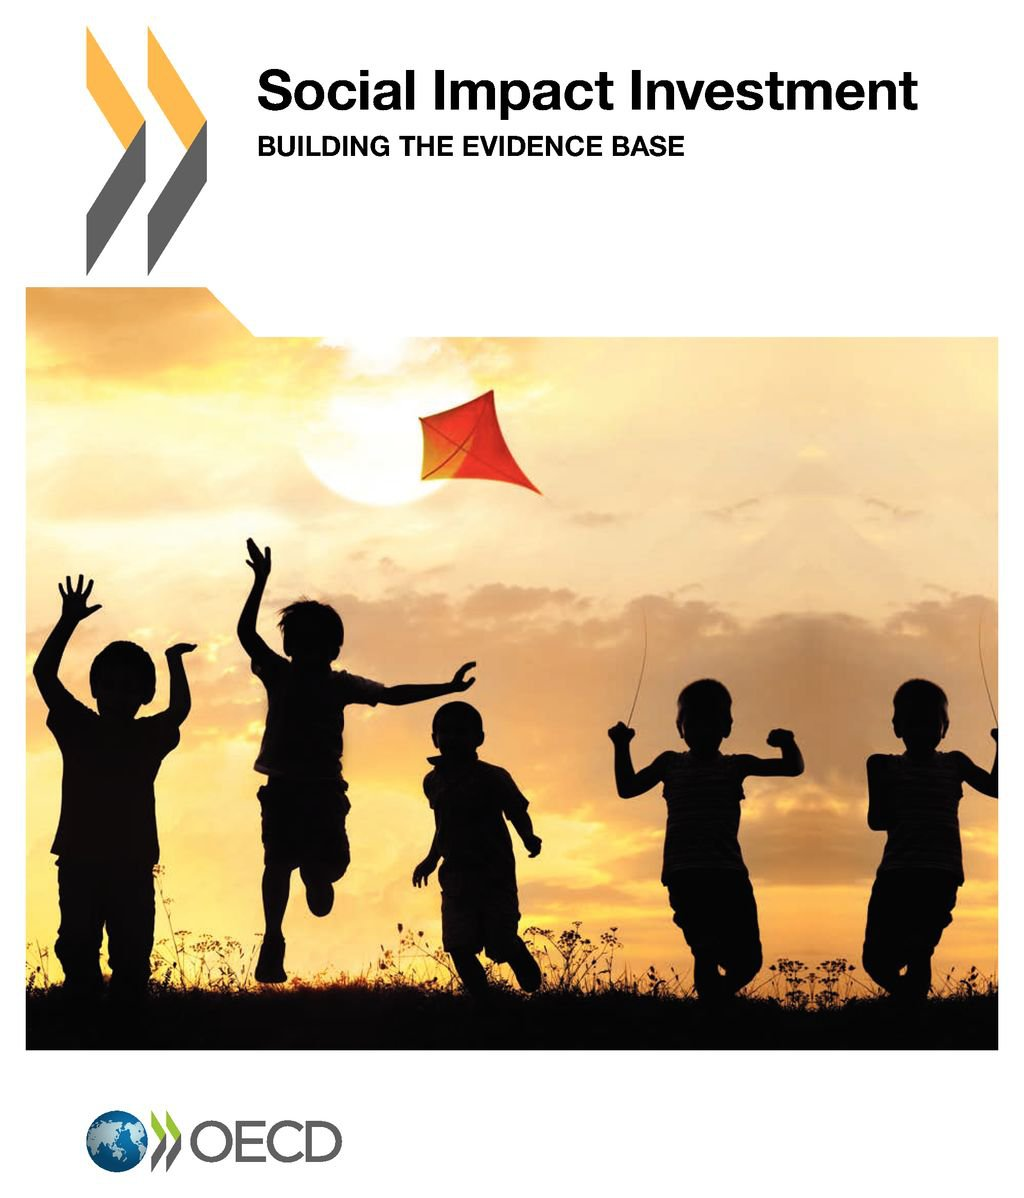 social-impact-investmen-building-the-evidence-base-2015